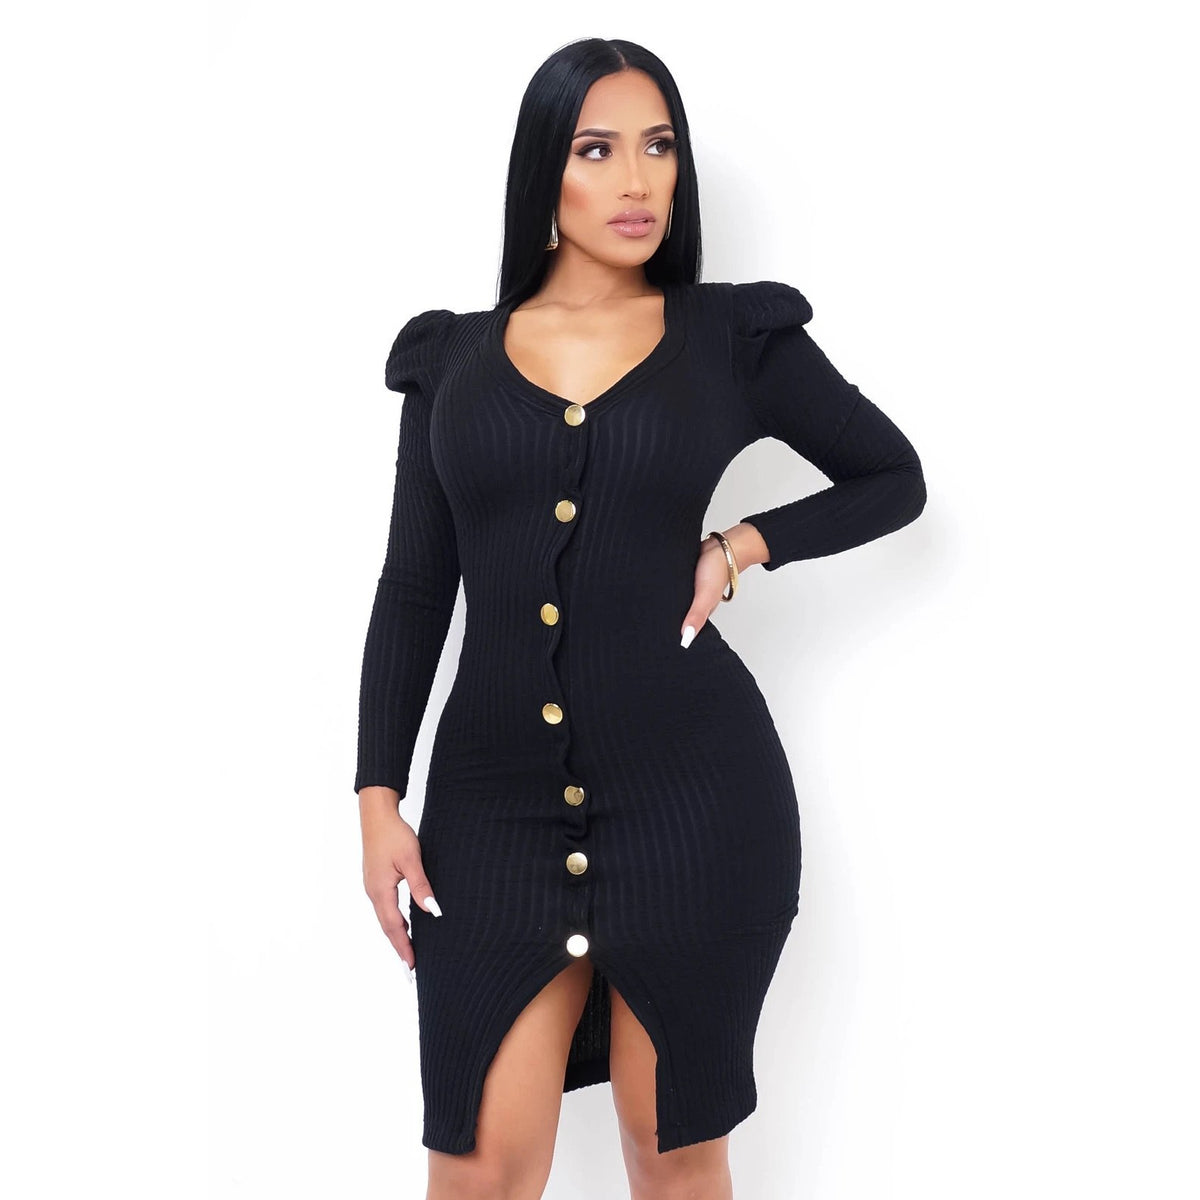 Portia Black Midi Dress